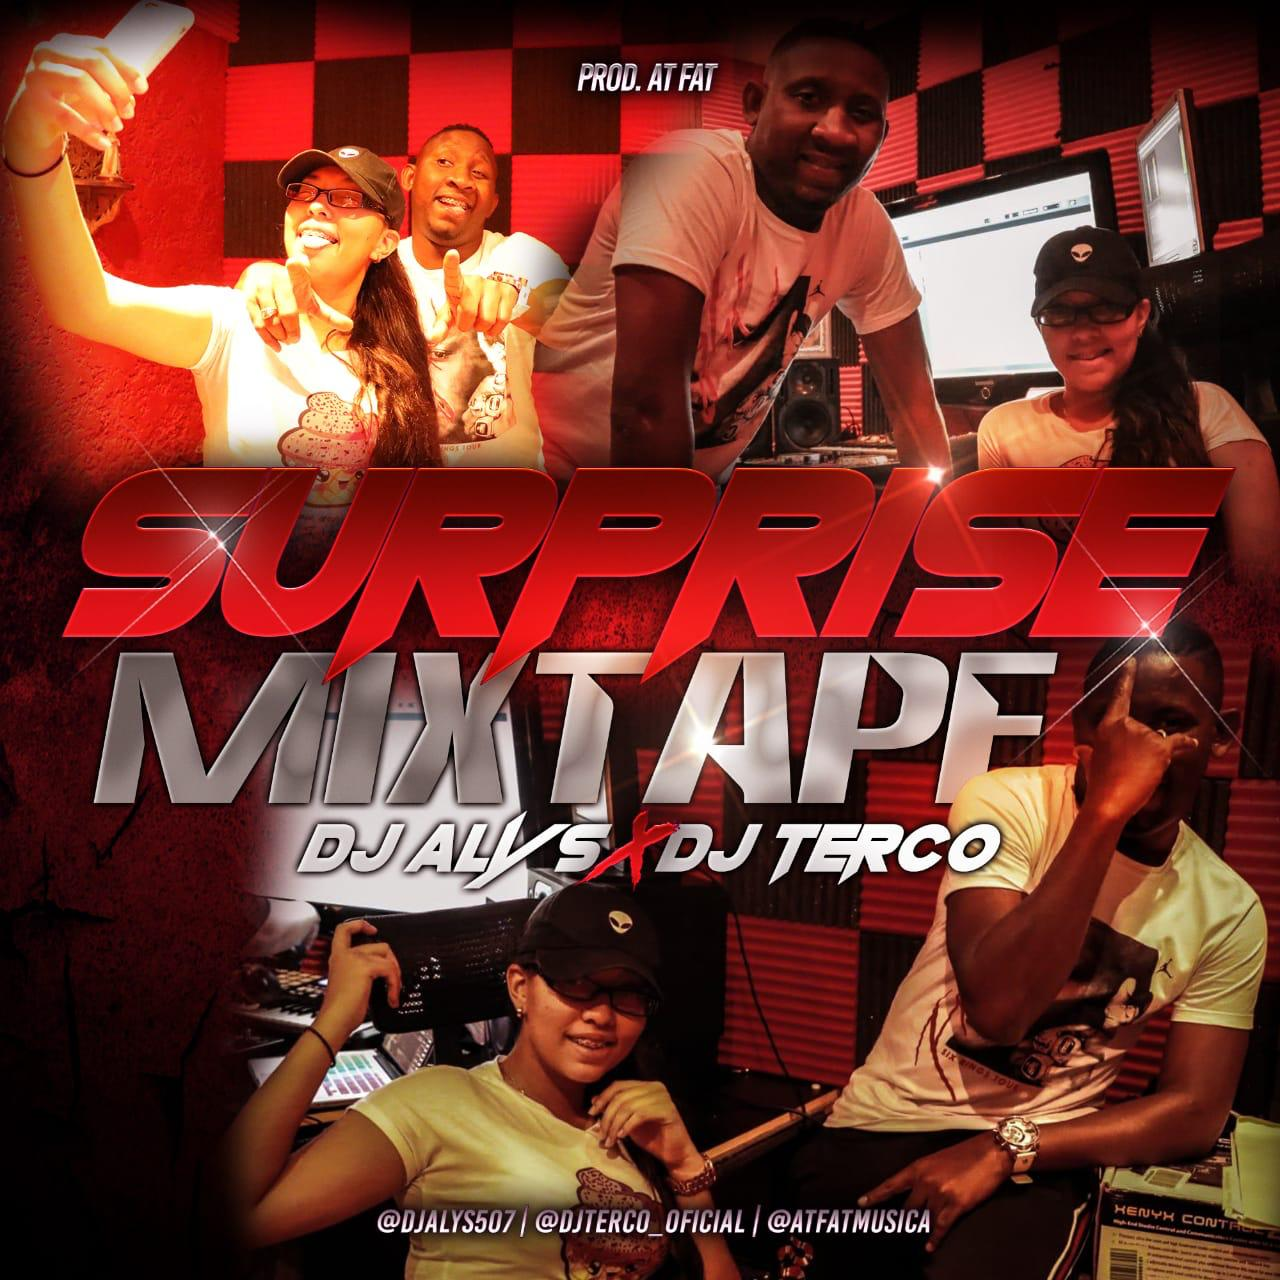 Dj Alys Ft. DjTerco - Surprise Mixtape